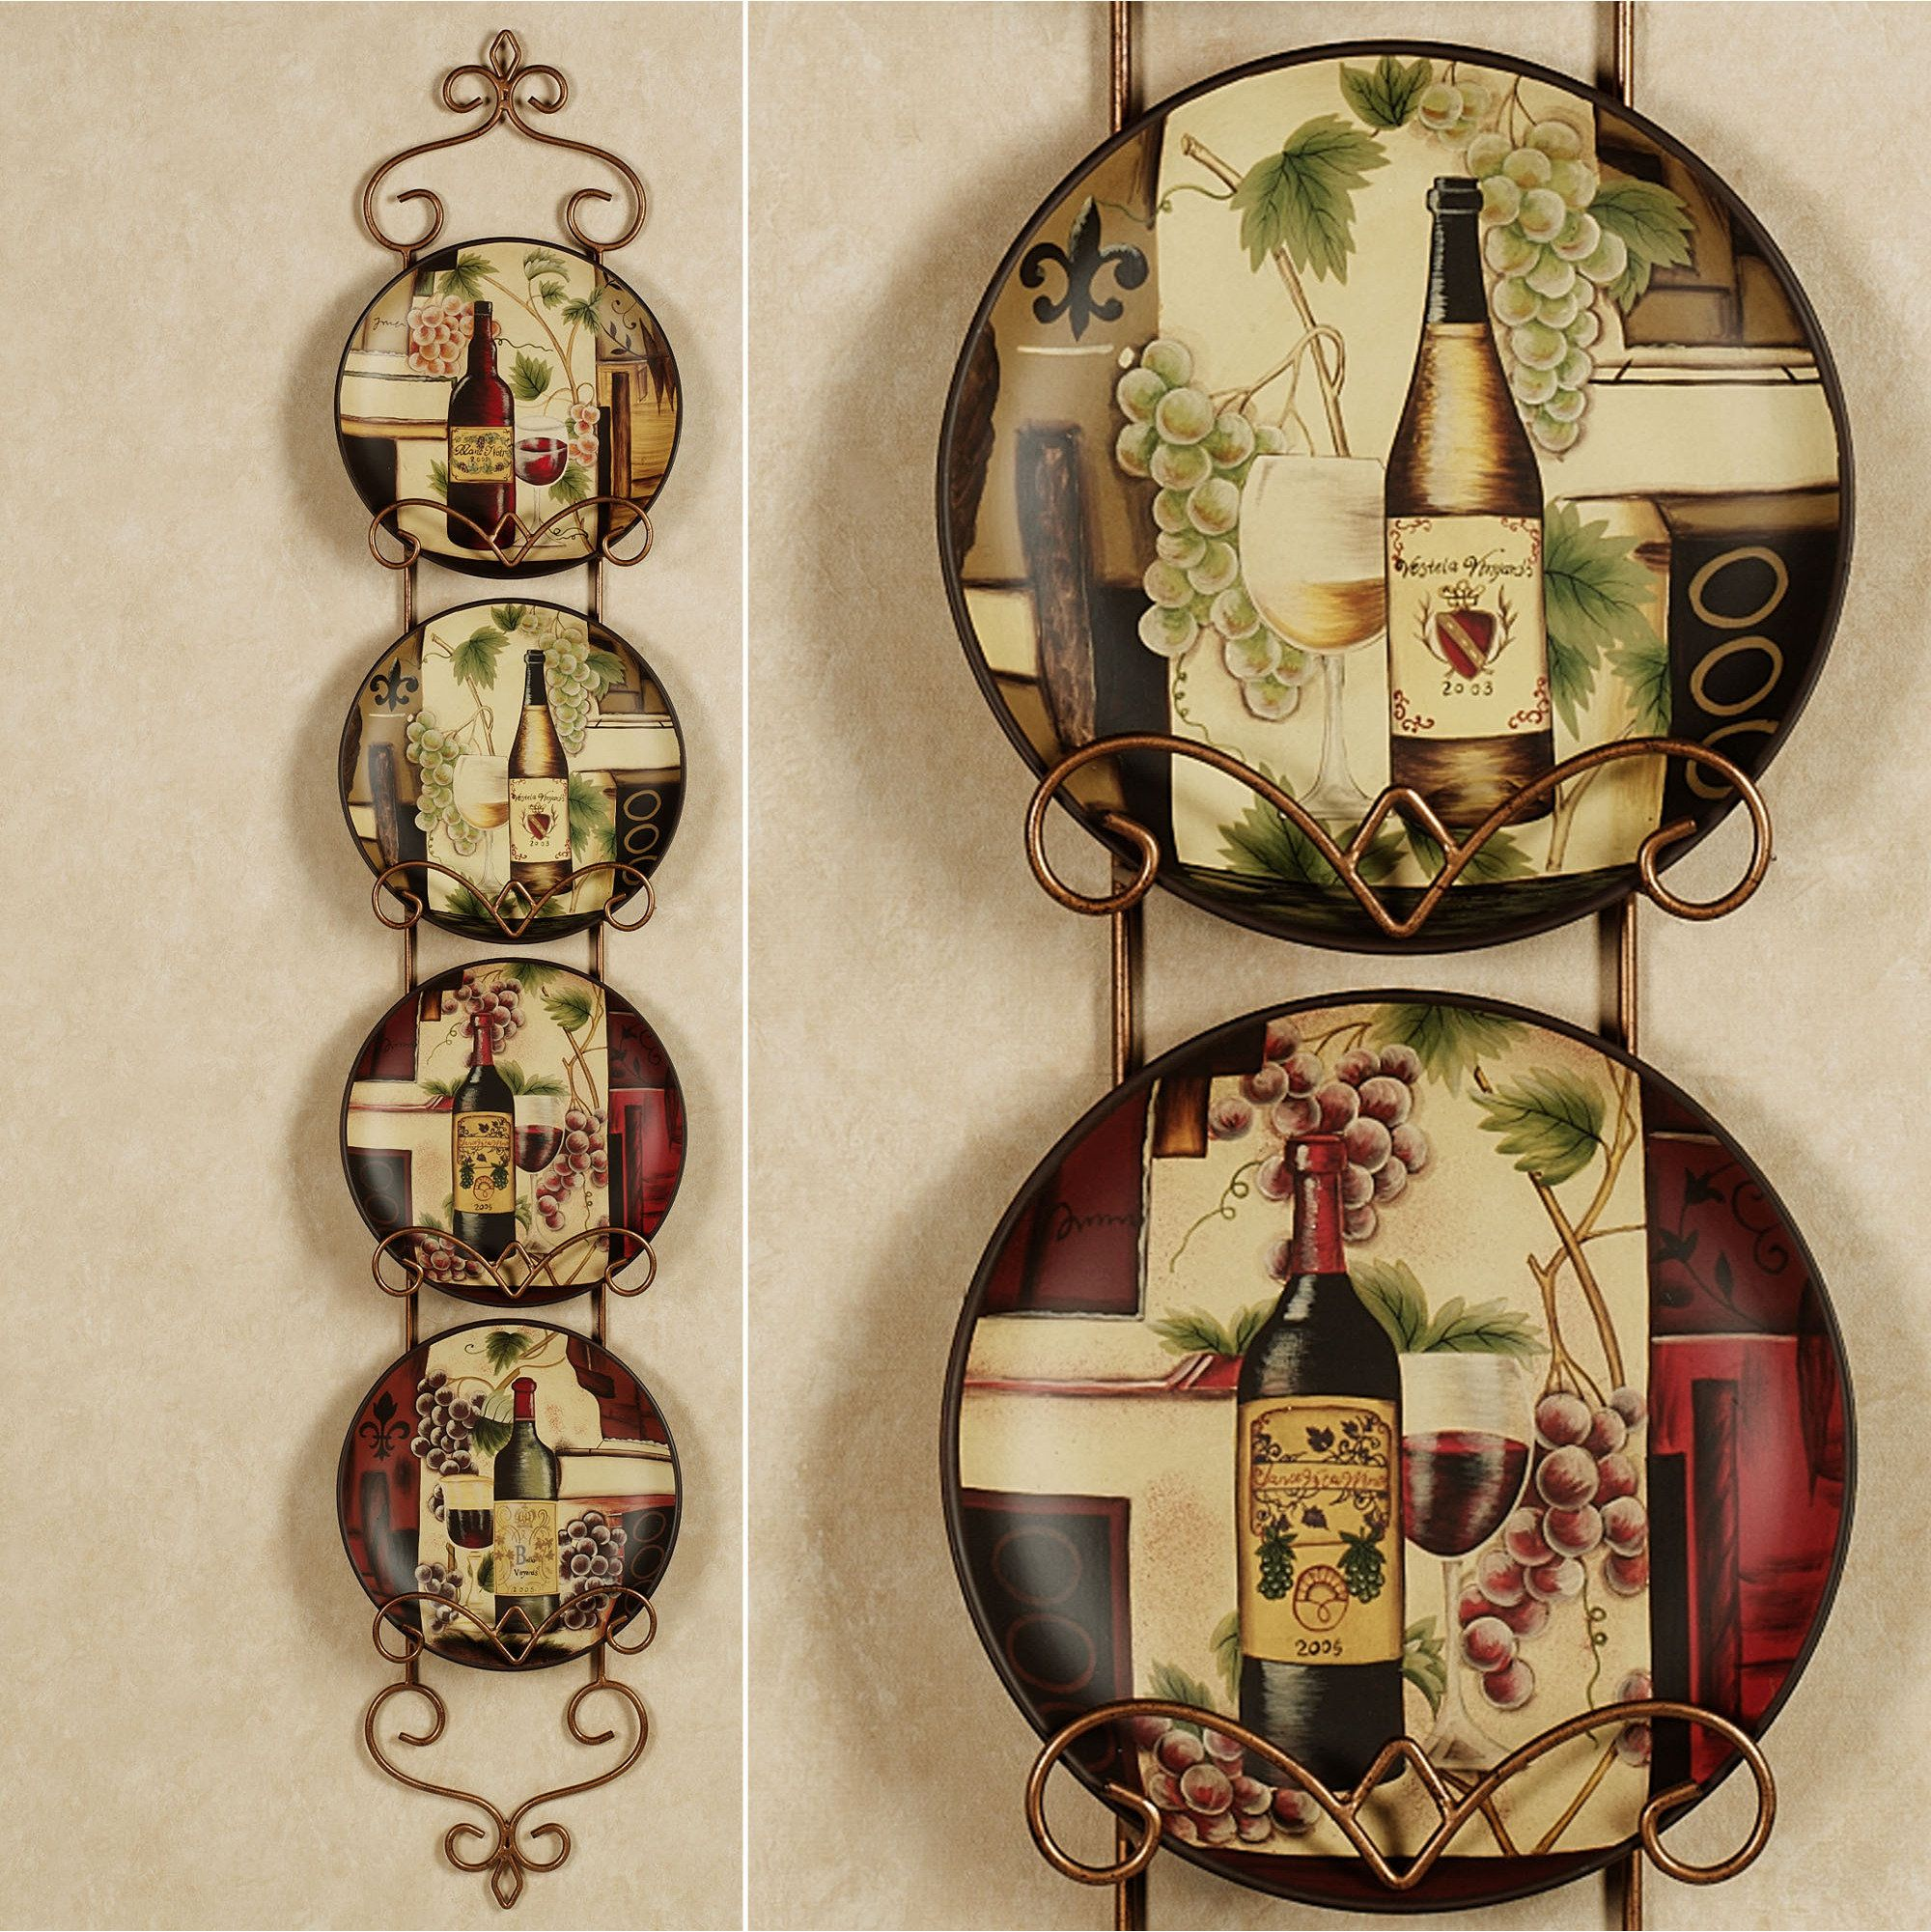 Wine Themed Kitchen I Love Decorative Plates For The Home Pinterest Wine I Love